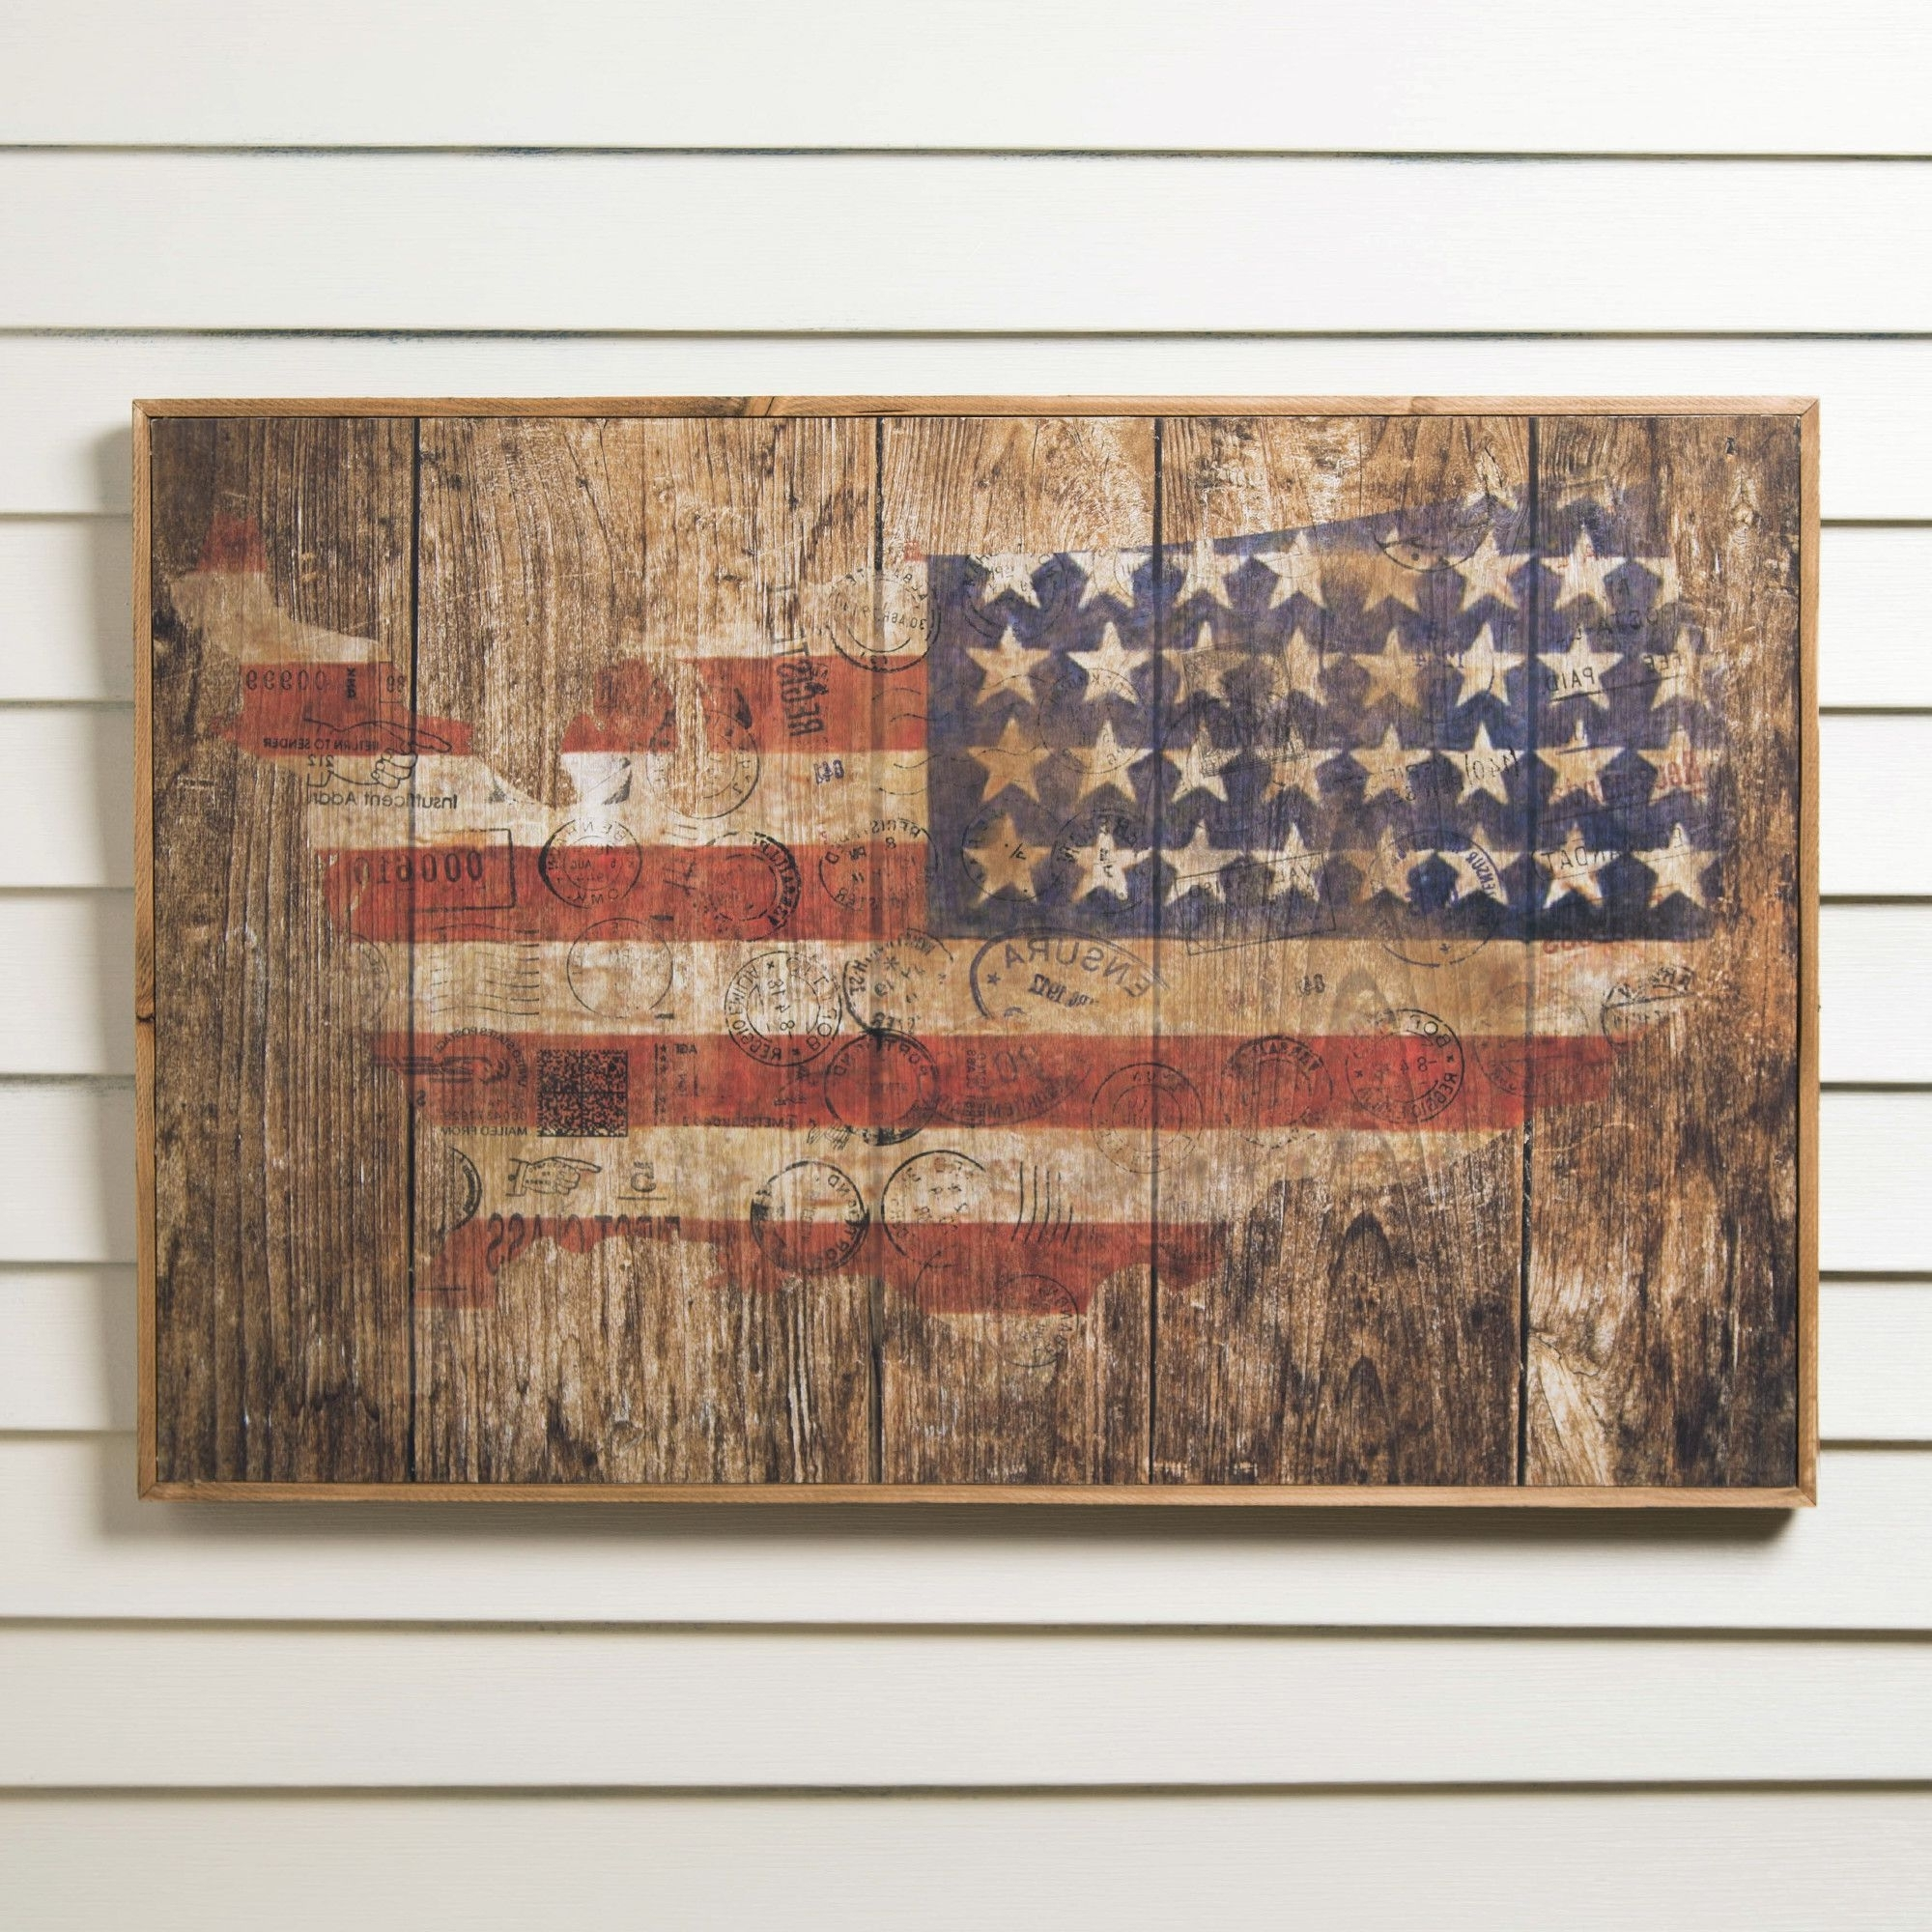 Rustic Charm, Birch Lane And Birch Throughout Famous Rustic American Flag Wall Art (View 13 of 15)